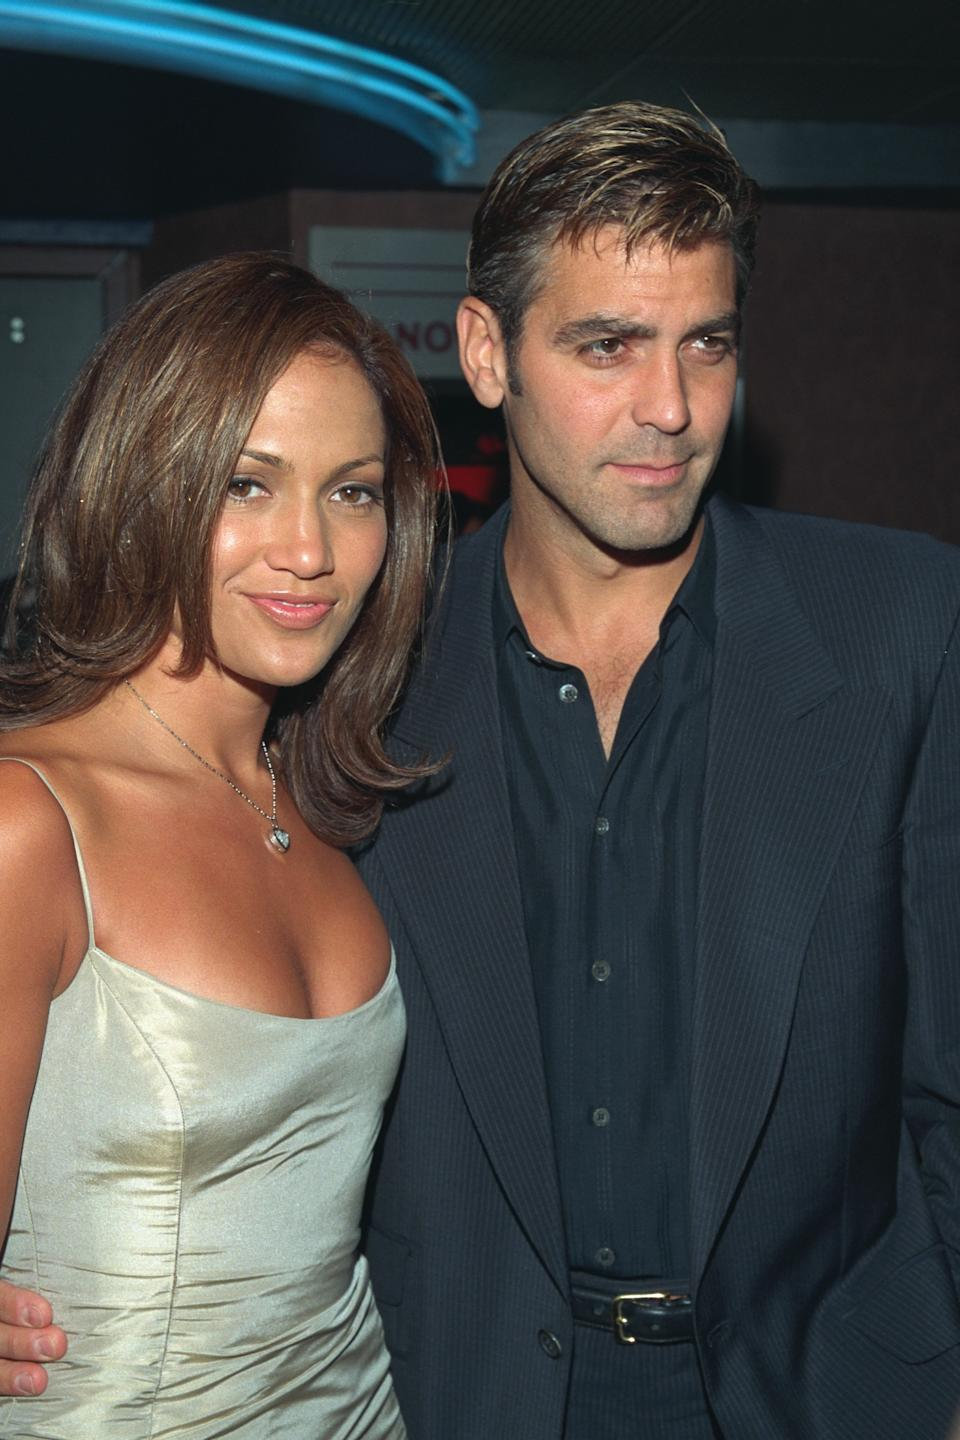 (Original Caption) George Clooney and Jennifer Lopez, stars of the movie at the Chelsea West Cinema. (Photo by Steve Azzara/Corbis via Getty Images)